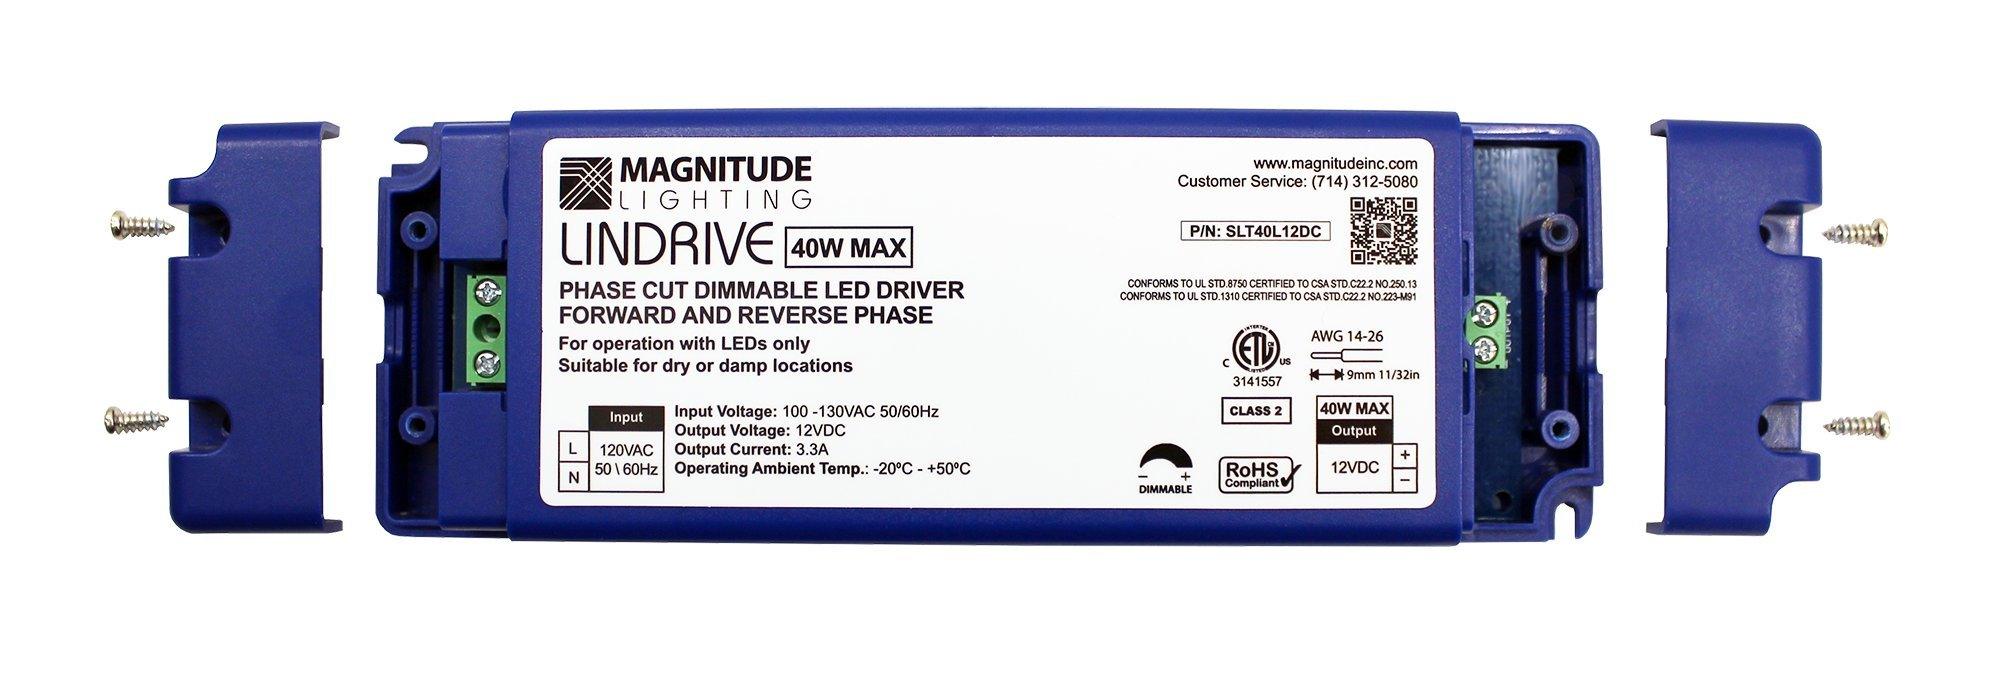 LED Driver - LINDRIVE - Magnitude 40W 12V LED Dimmable Transformer SLT40L12DC from Inspired LED Electronic Series by Inspired LED (Image #2)